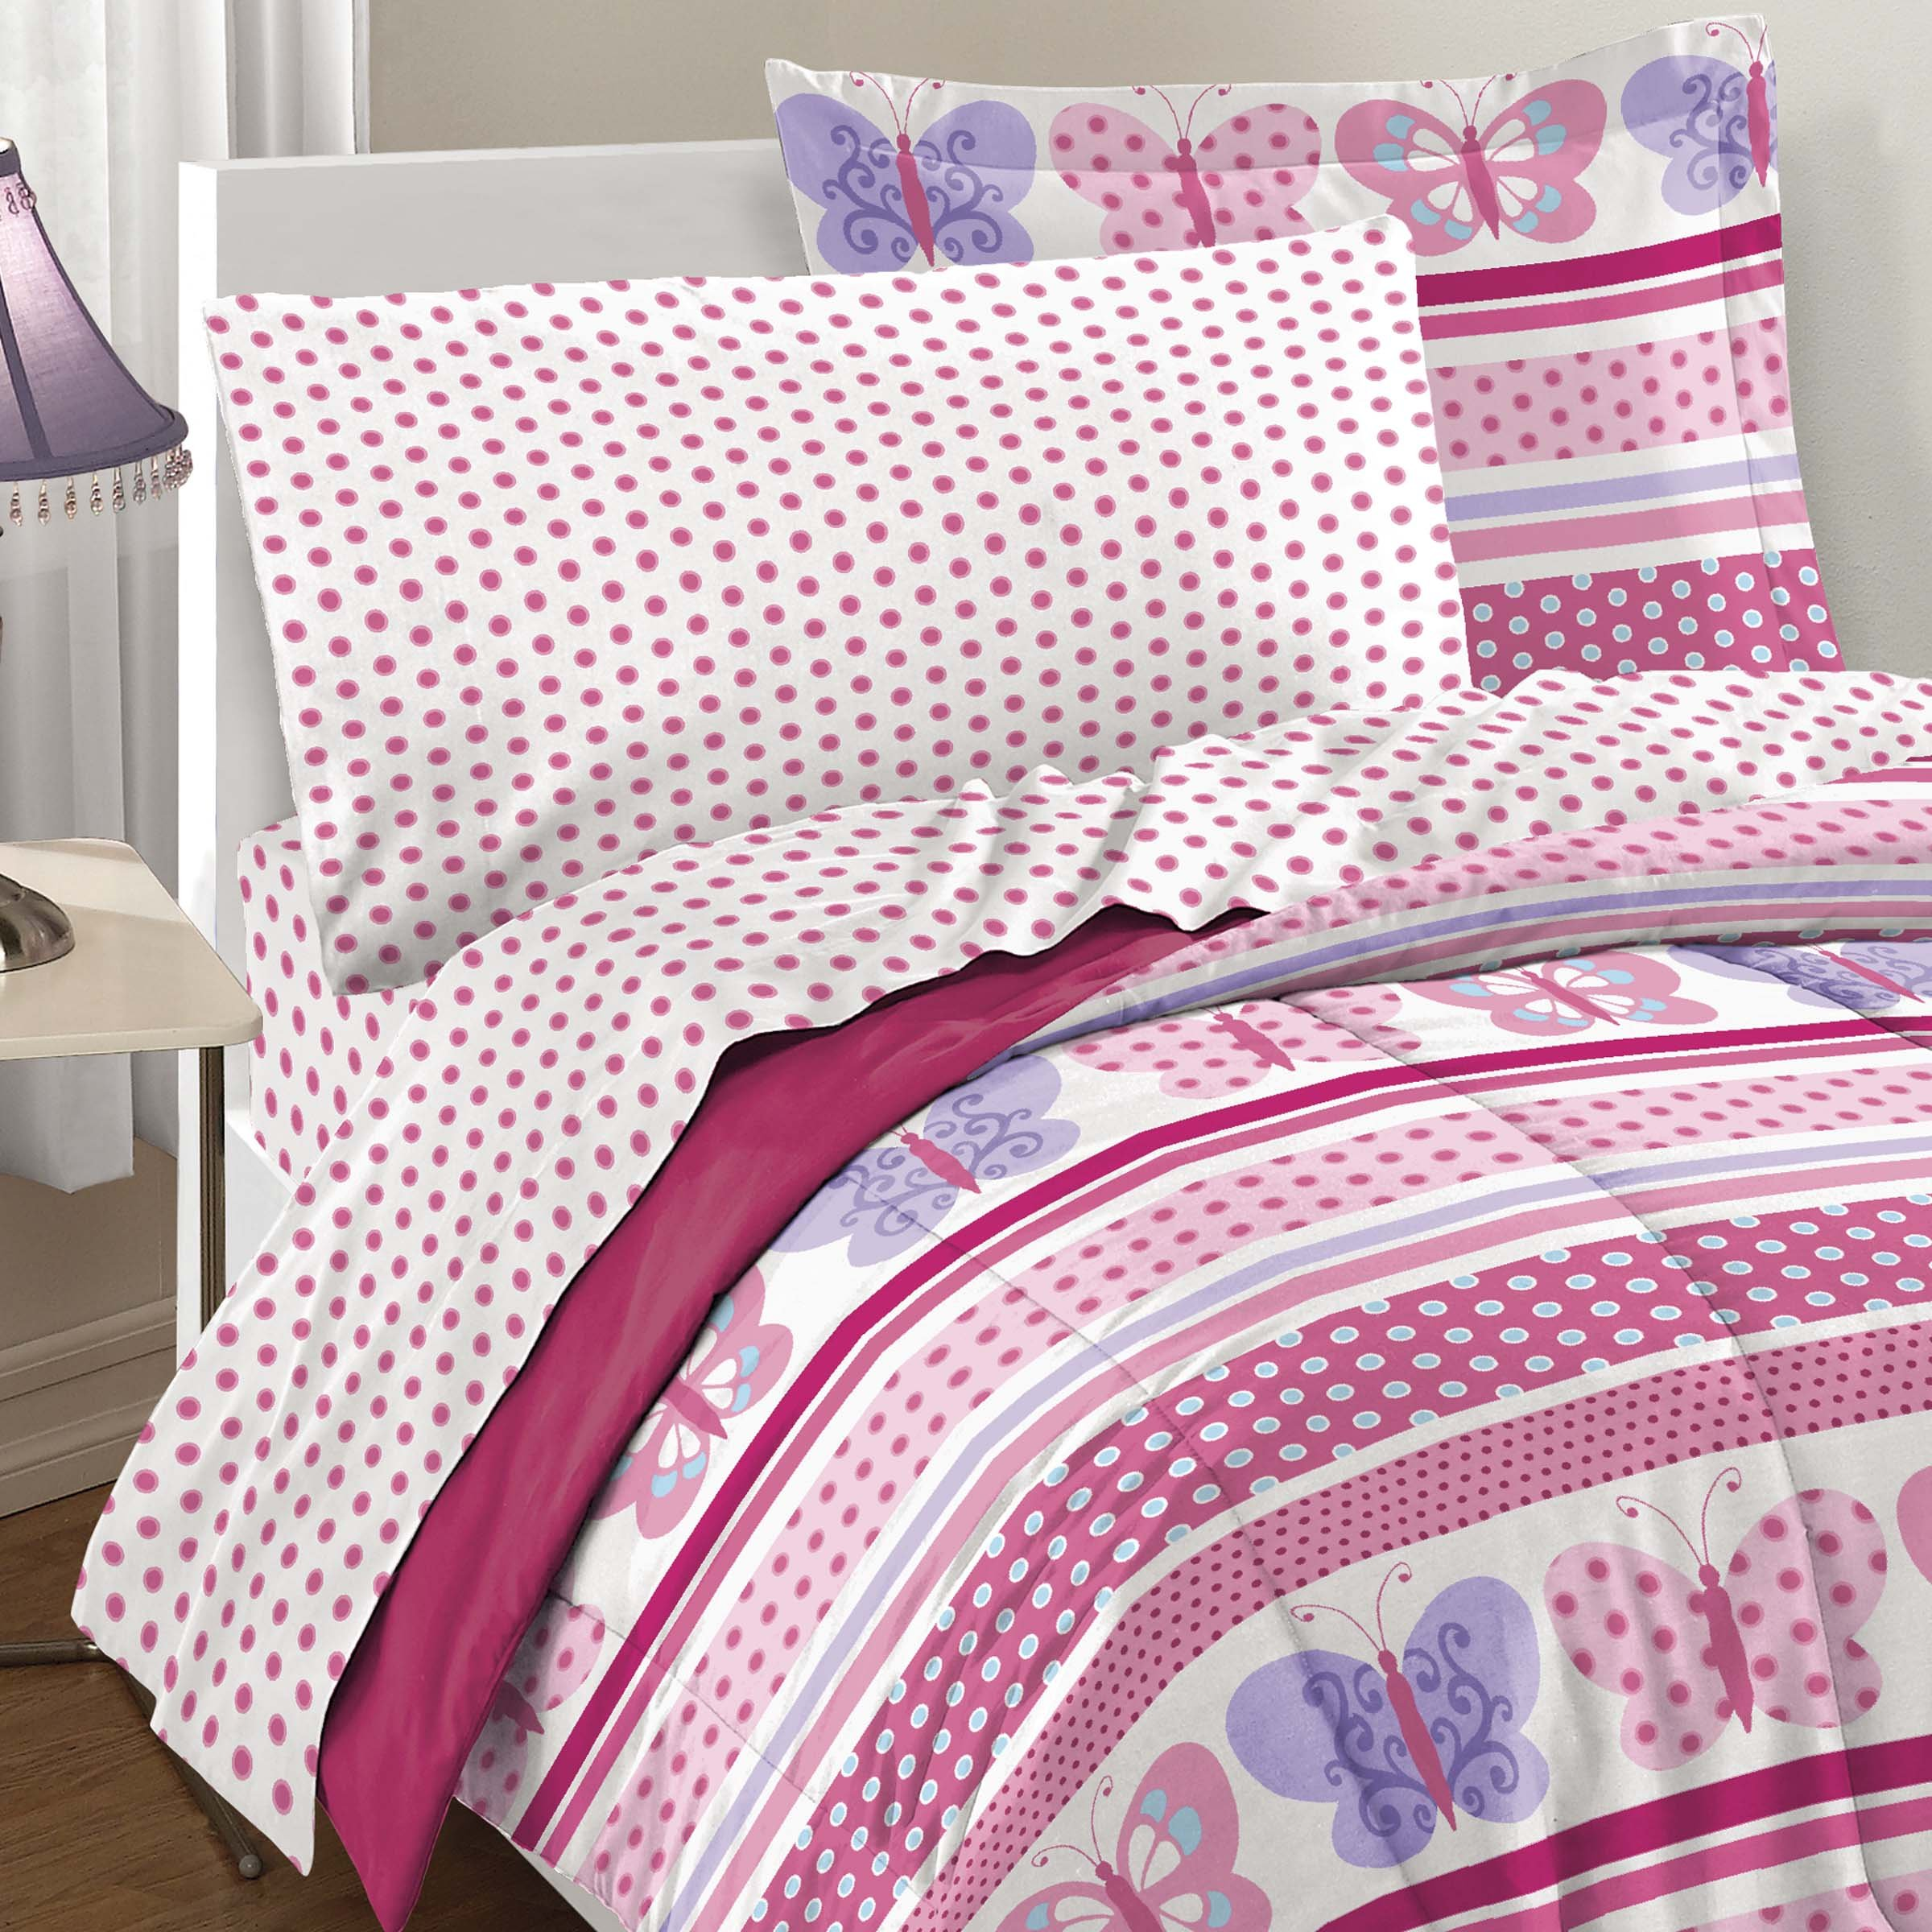 Dream Factory Butterfly Dots Ultra Soft Microfiber Girls Comforter Set, Pink, Twin by Dream Factory (Image #5)